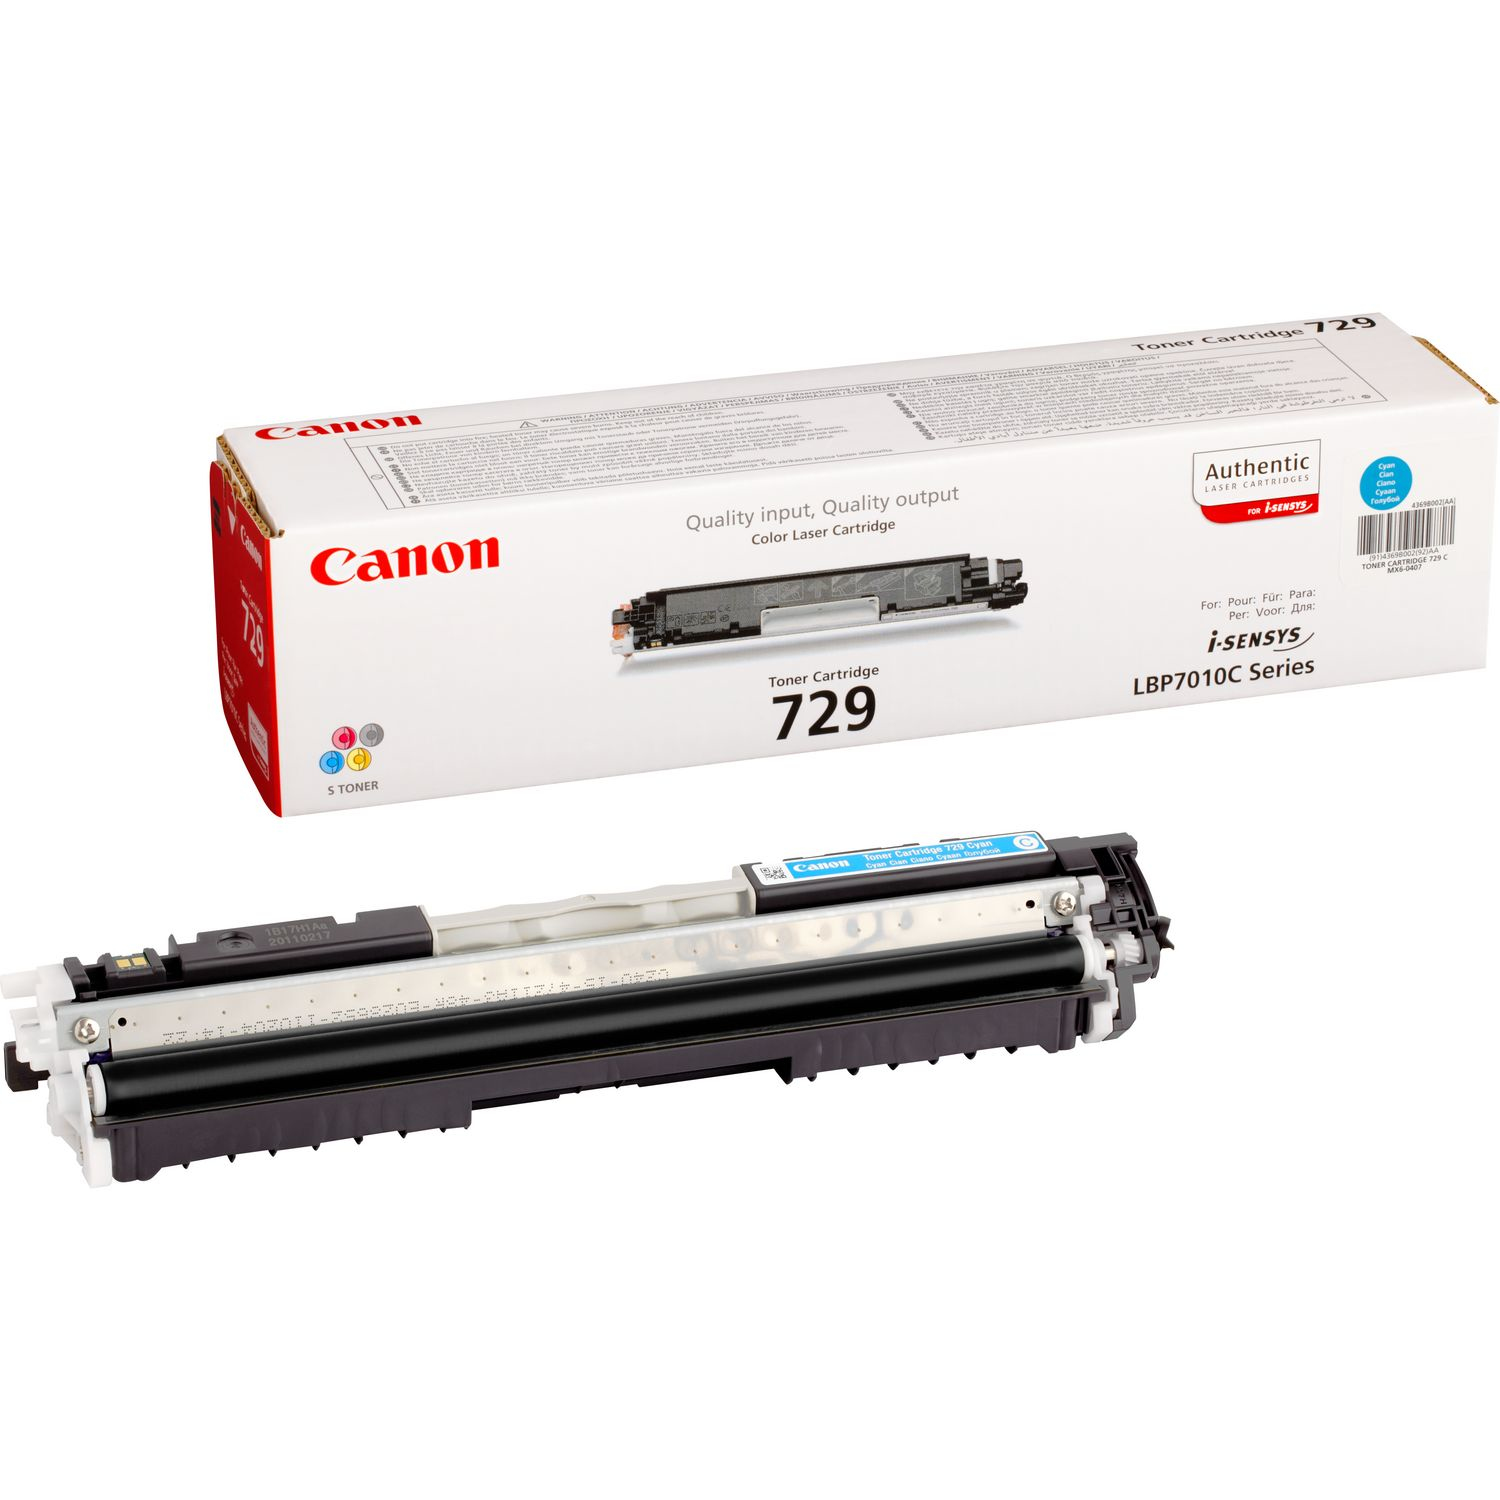 729 Cyan Toner Cart 4369b002 - WC01